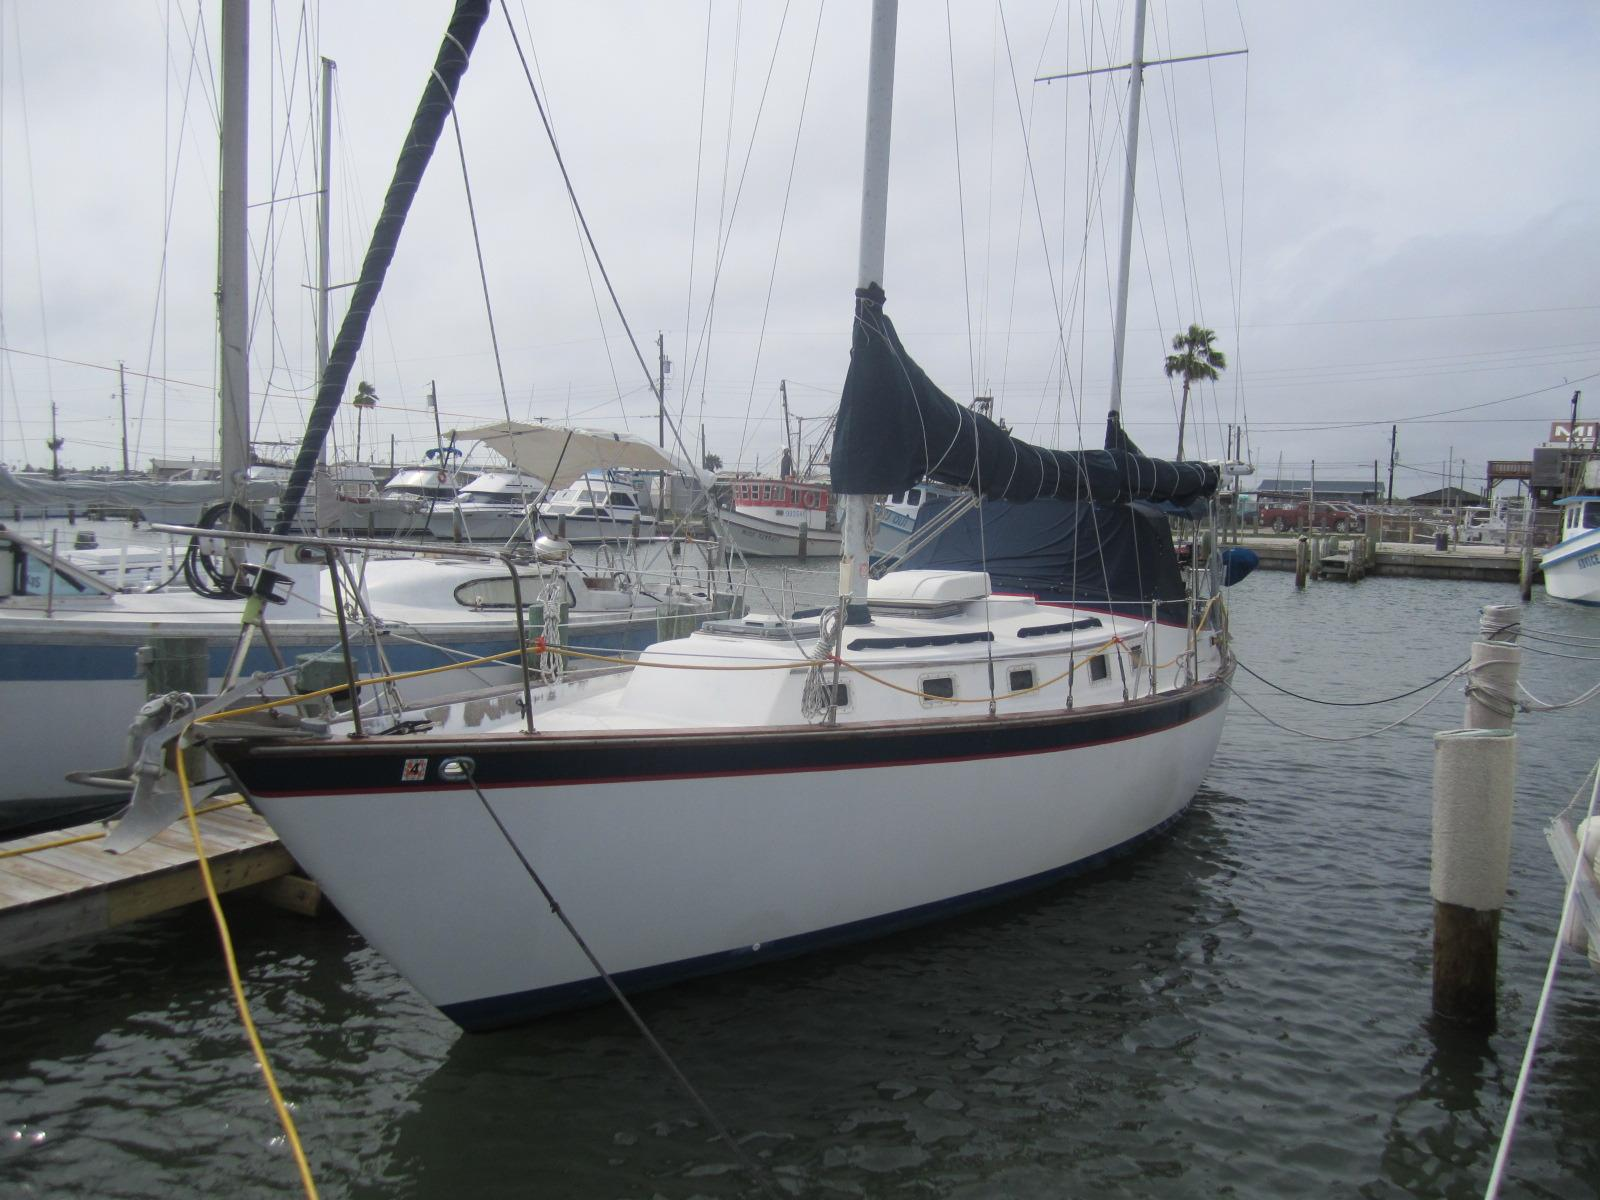 Aransas Pass (TX) United States  city photos gallery : 1981 Endeavour Ketch Vela Barca in vendita www.yachtworld.it